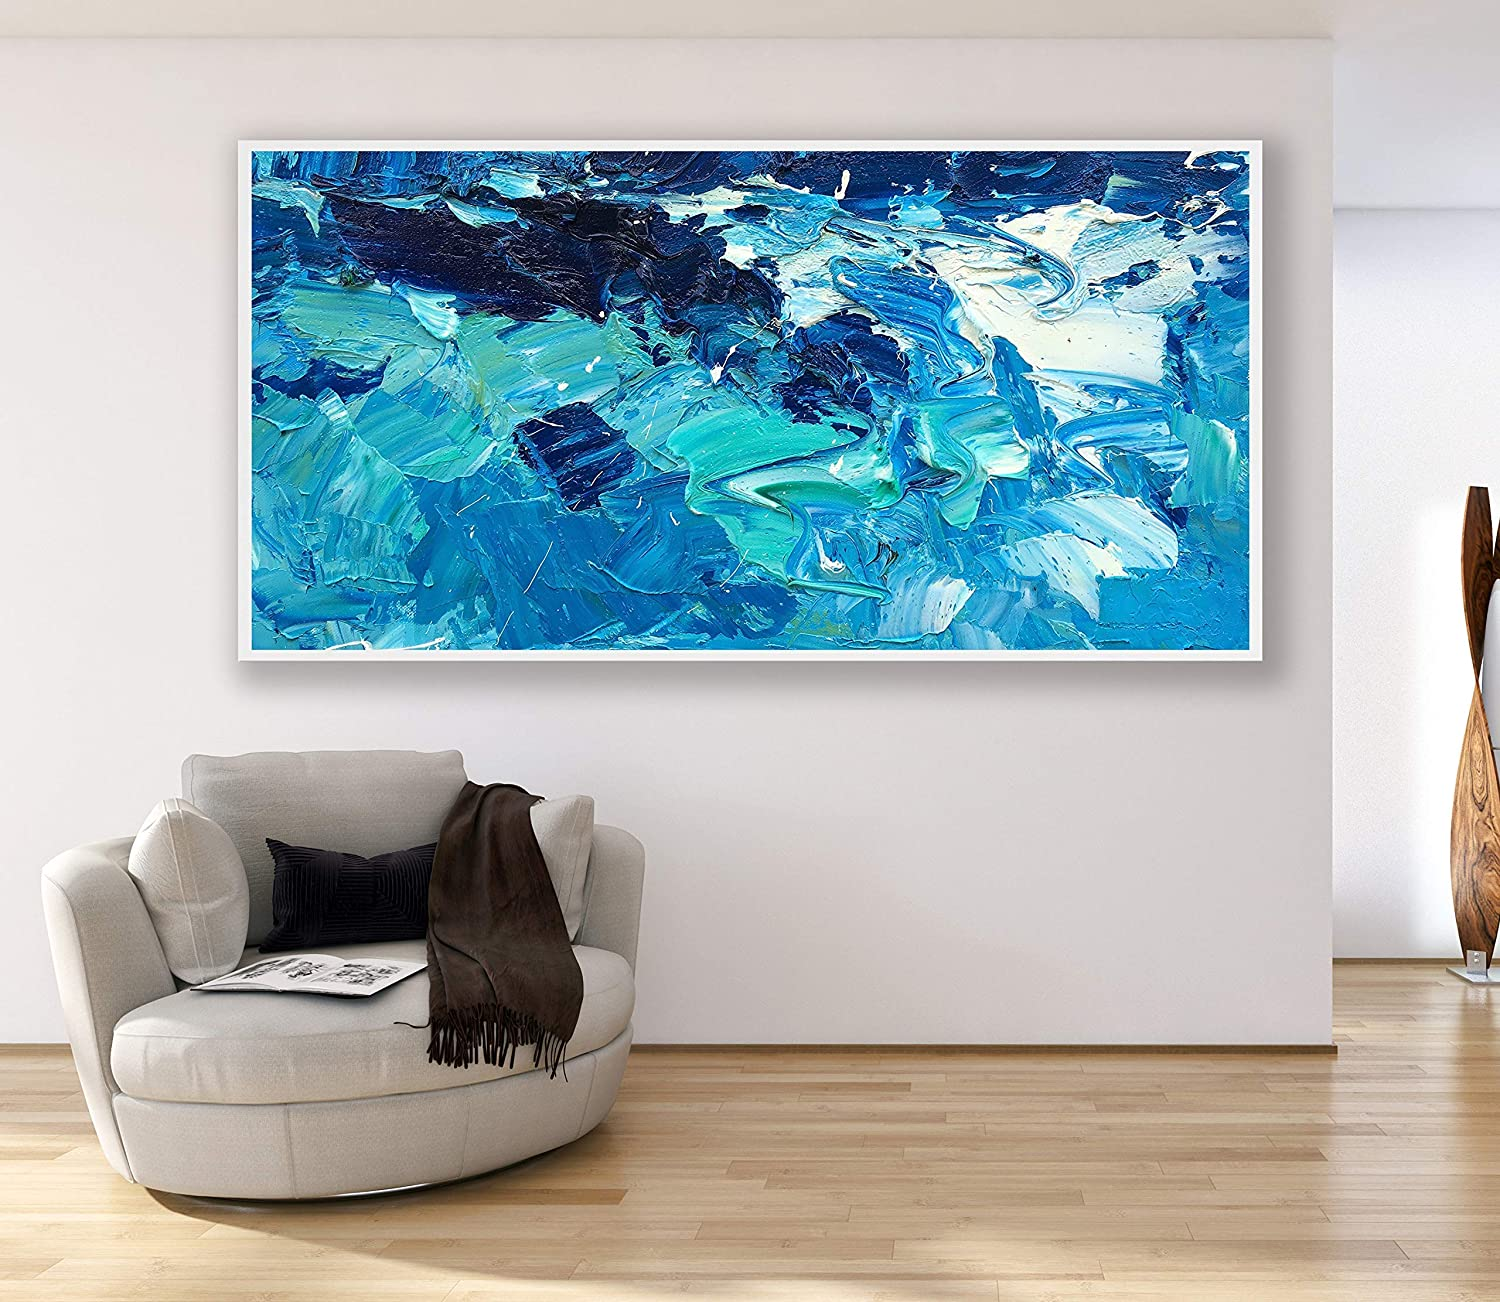 Marvelous Ocean Painting On Canvas 80 Inch Original Blue Abstract Download Free Architecture Designs Embacsunscenecom